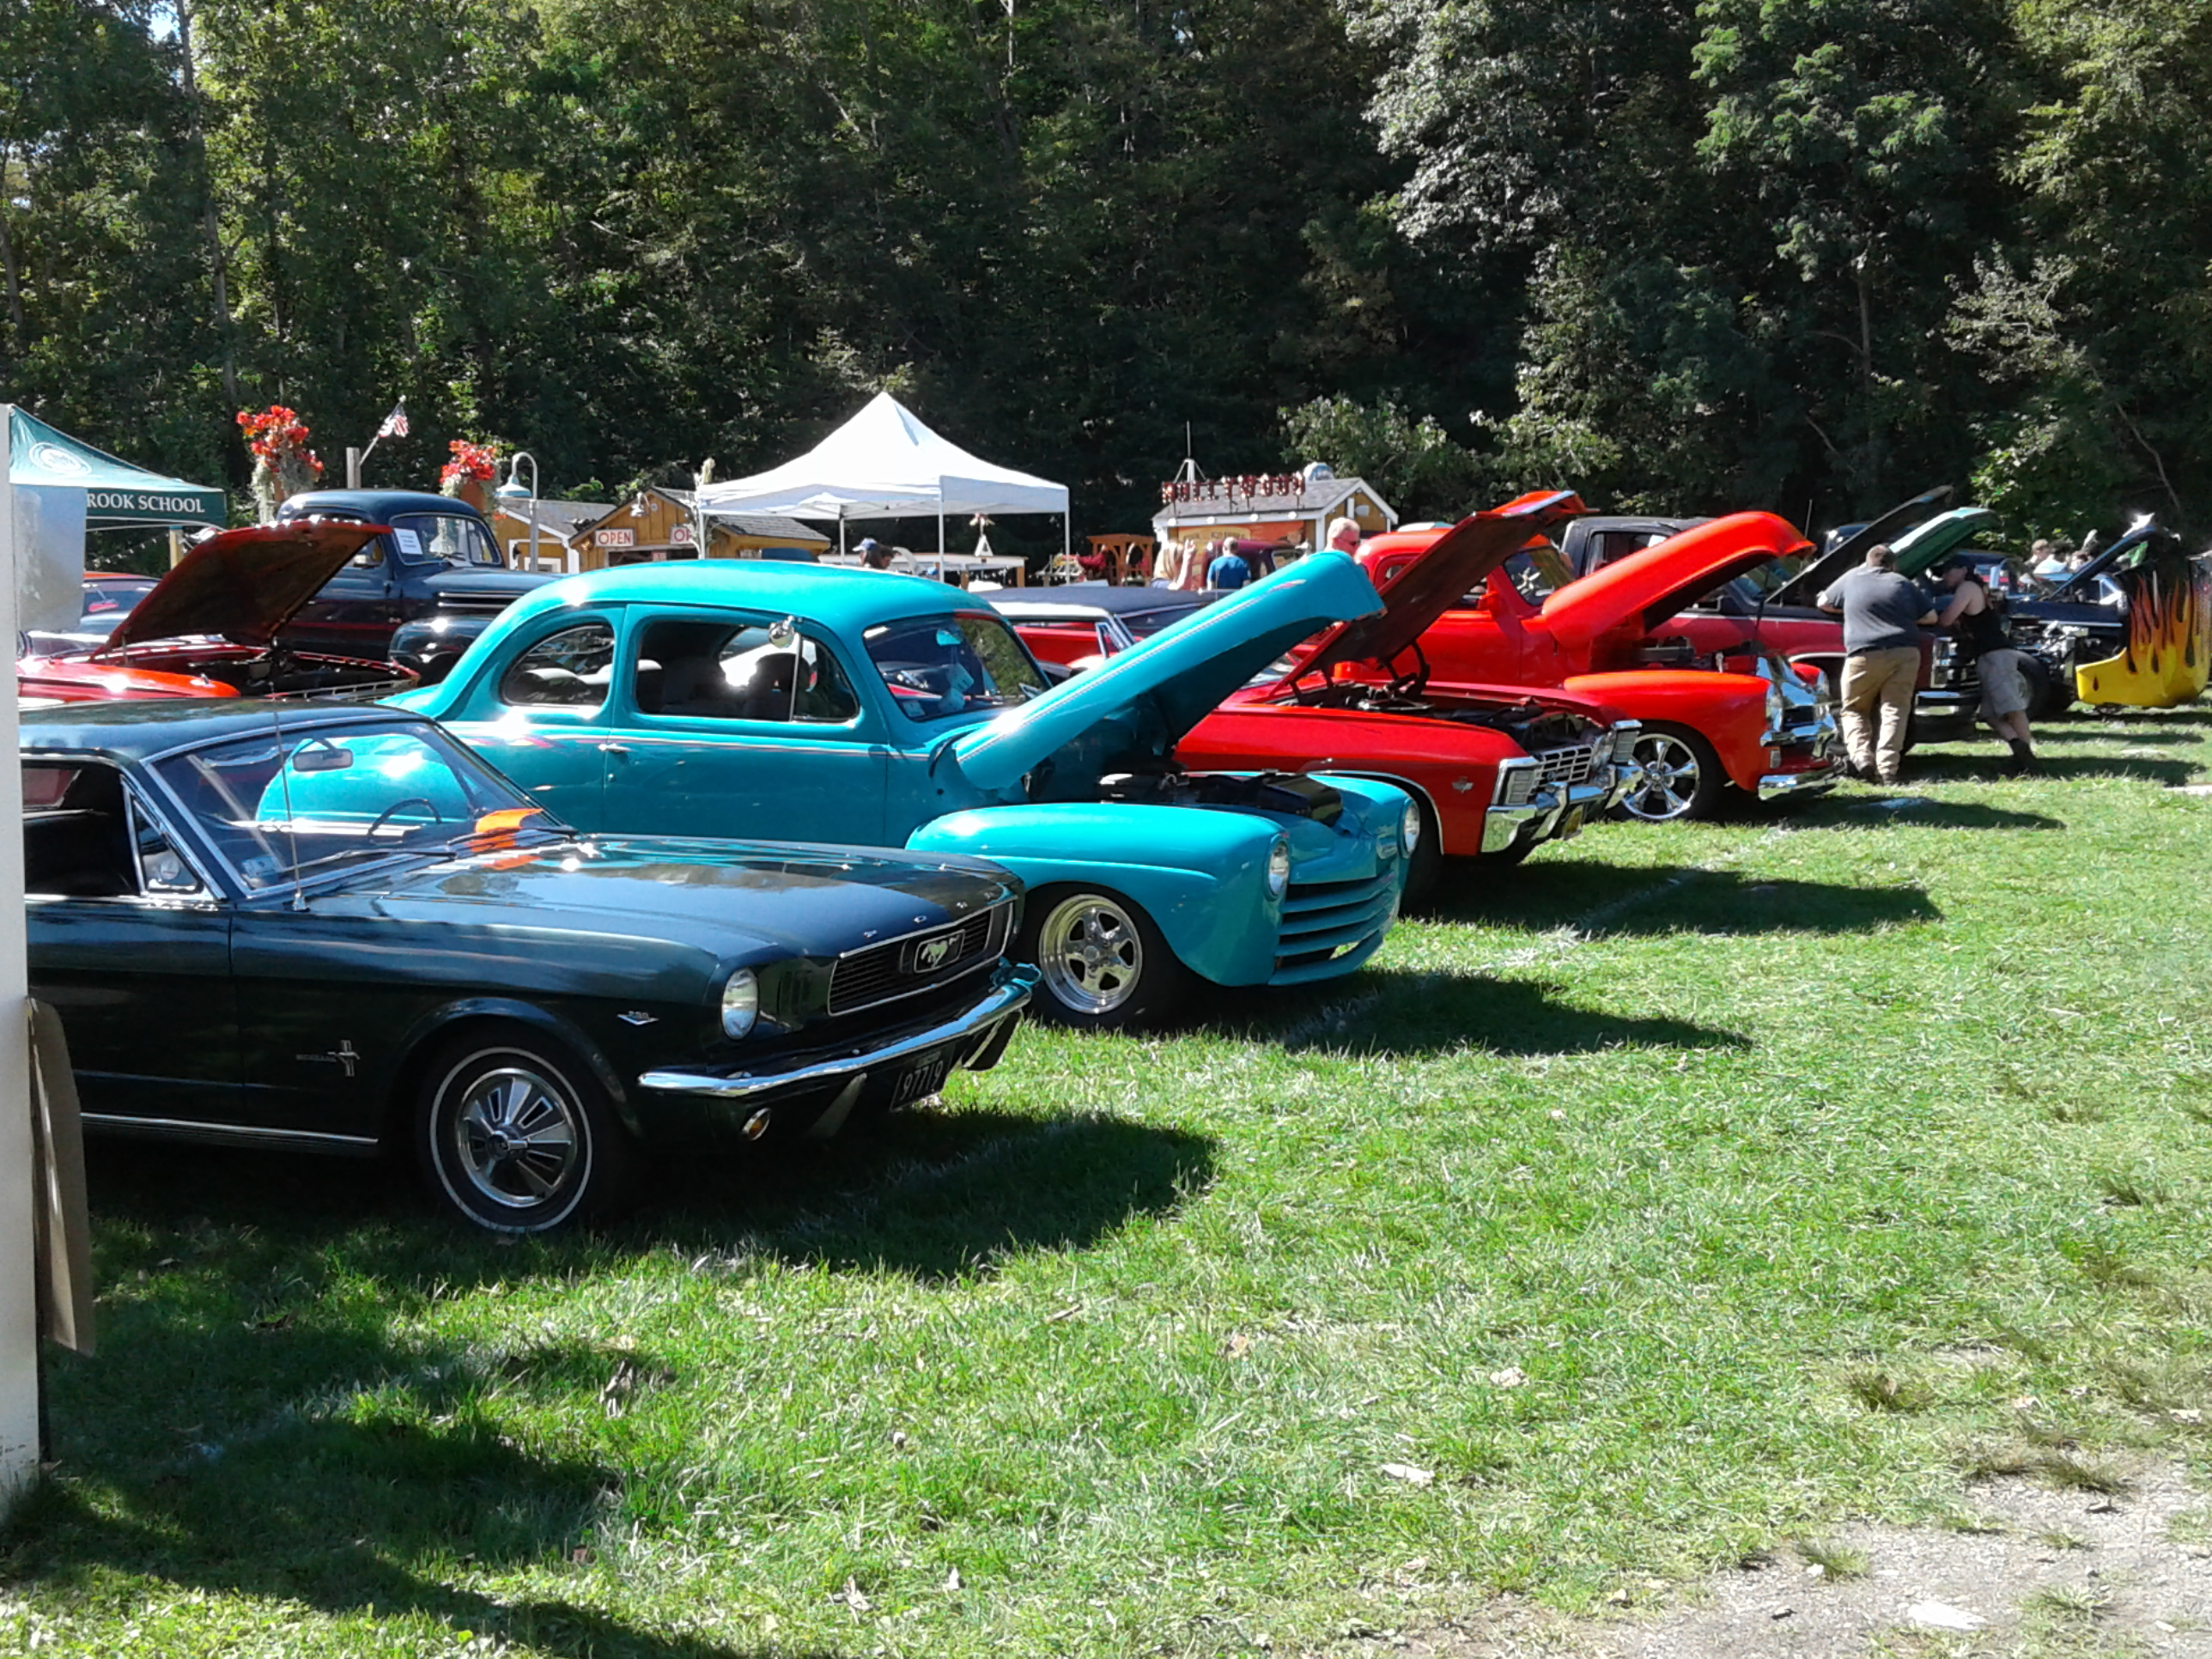 <strong>From 10 a.m. to 2 p.m., local residents and visitors to the area wandered up and down the rows of cars on display in this year's Lions Club Community Classic Car Show, pausing to admire the different models and chat with the vehicles' owners.<em>Photoby Kaitlin Lyle</em></strong>